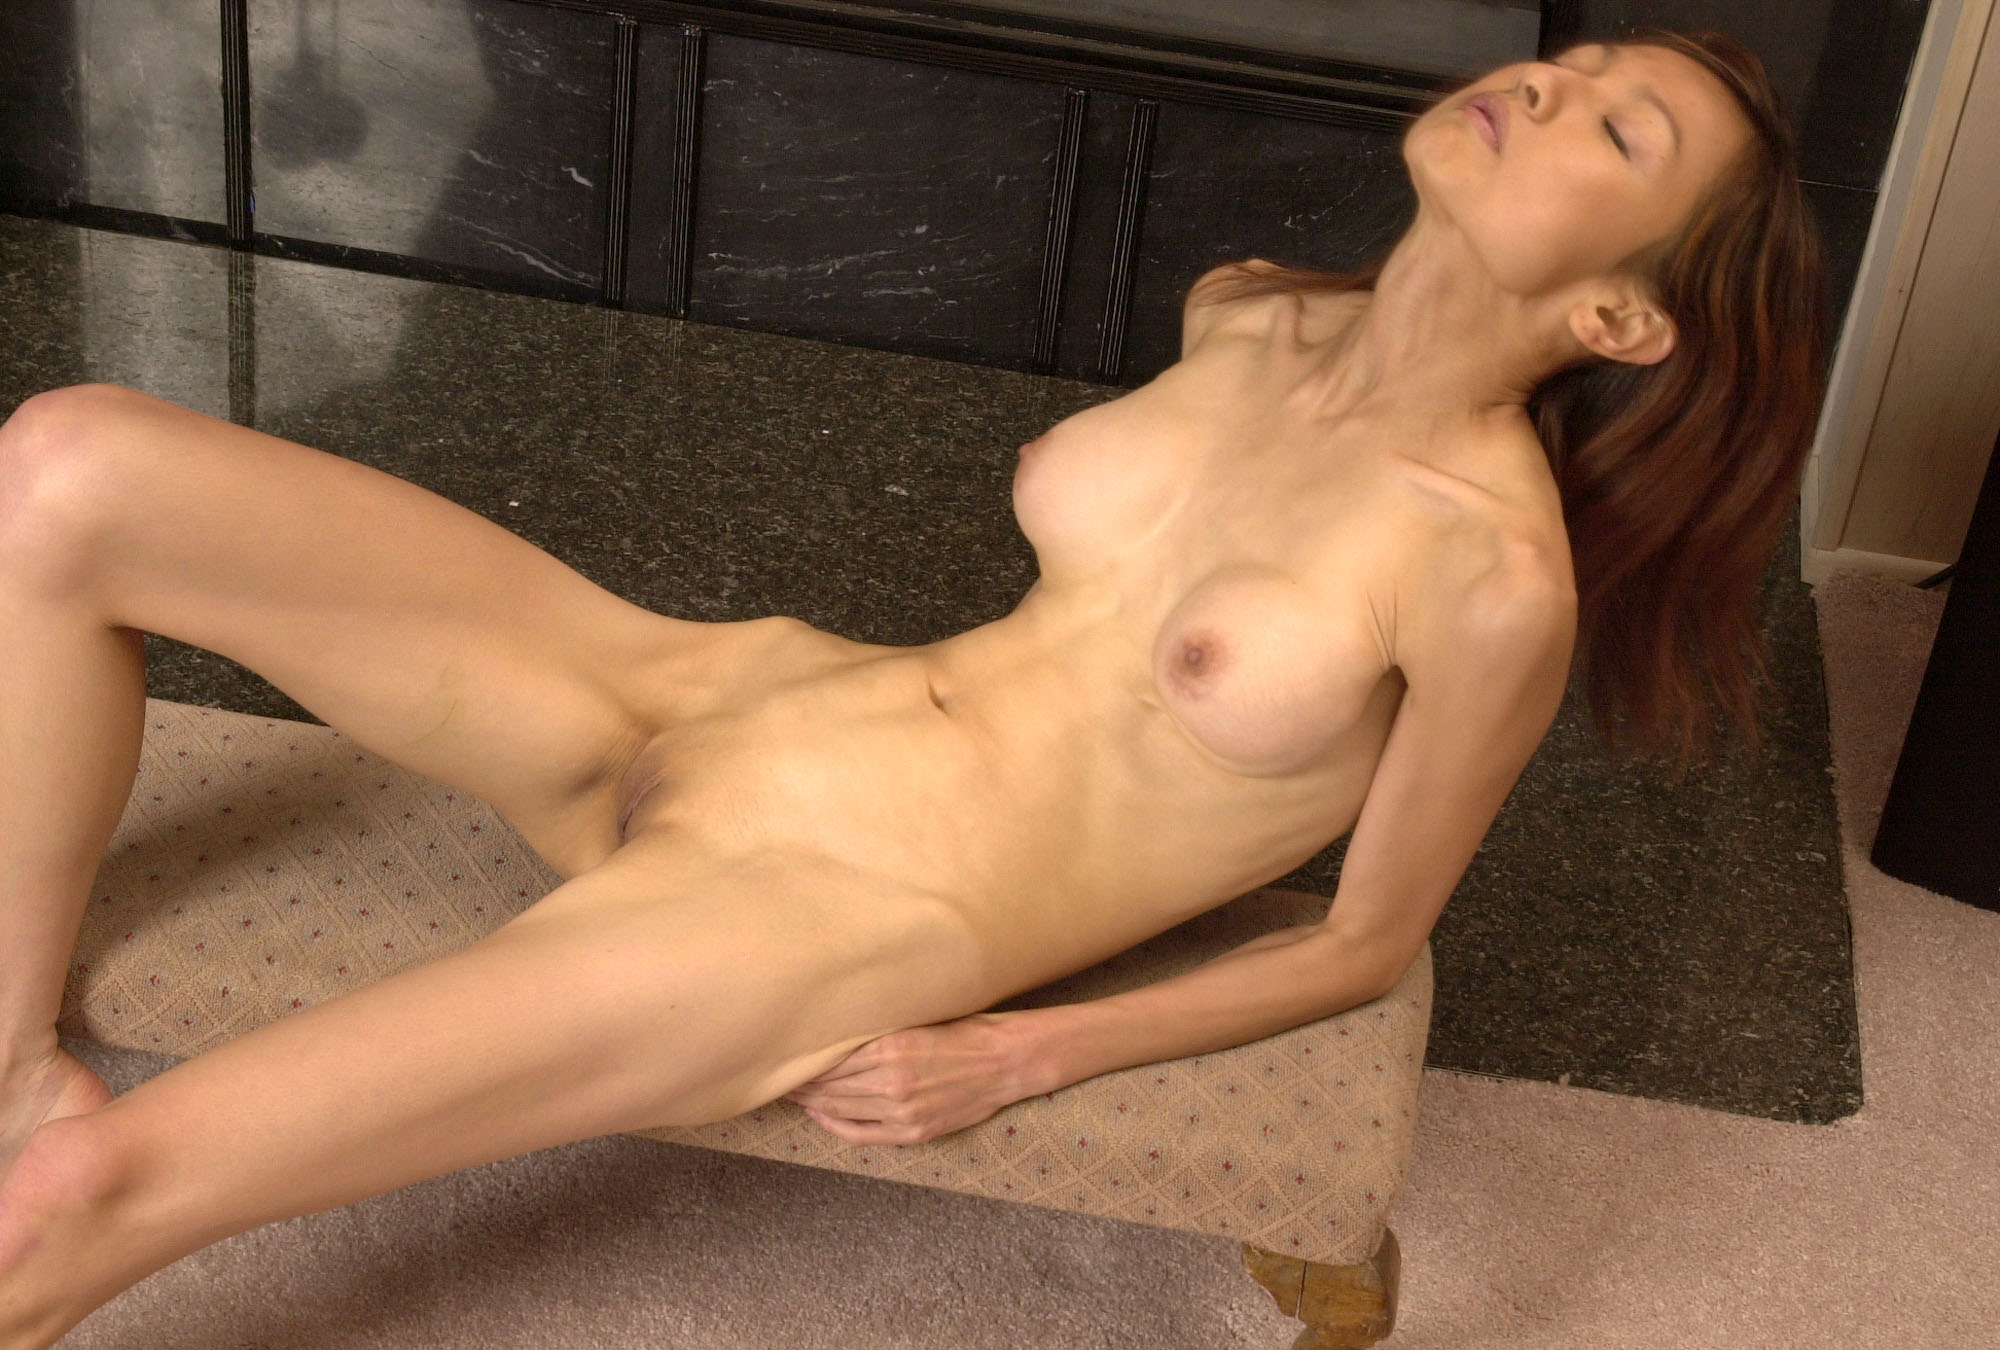 Anorectic nudes pics smut photo